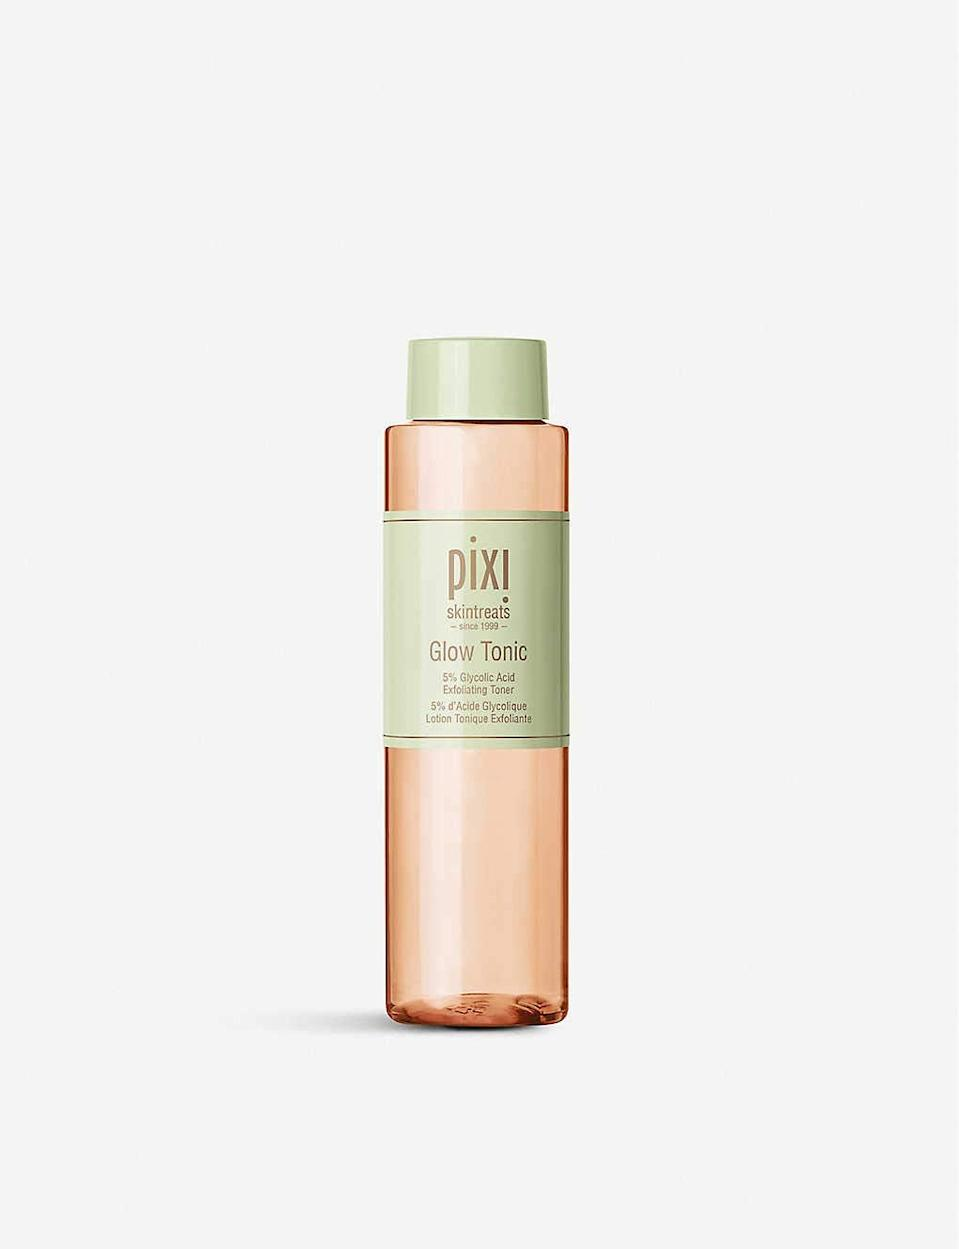 """<h3>Pixi Glow Tonic</h3><br><strong>Mia</strong><br><br>""""I was already familiar with Pixi products and had always heard great things about the brand's Glow Tonic, but after digging DEEP into the Amazon reviews on this gem I was completely sold. It arrived so quickly and after using it for just a few days (morning and night after cleansing) I noticed a huge difference in my skin. My pores were much smaller and the bothersome sebum bumps on my chin area were nearly nonexistent after a week. And the spots where I had previously picked at blemishes were noticeably brighter. Will definitely be ordering more of this magic potion.""""<br><br><strong>Pixi</strong> Glow Tonic with Aloe Vera & Ginseng, 8 oz, $, available at <a href=""""https://amzn.to/3a2Ql5l"""" rel=""""nofollow noopener"""" target=""""_blank"""" data-ylk=""""slk:Amazon"""" class=""""link rapid-noclick-resp"""">Amazon</a>"""